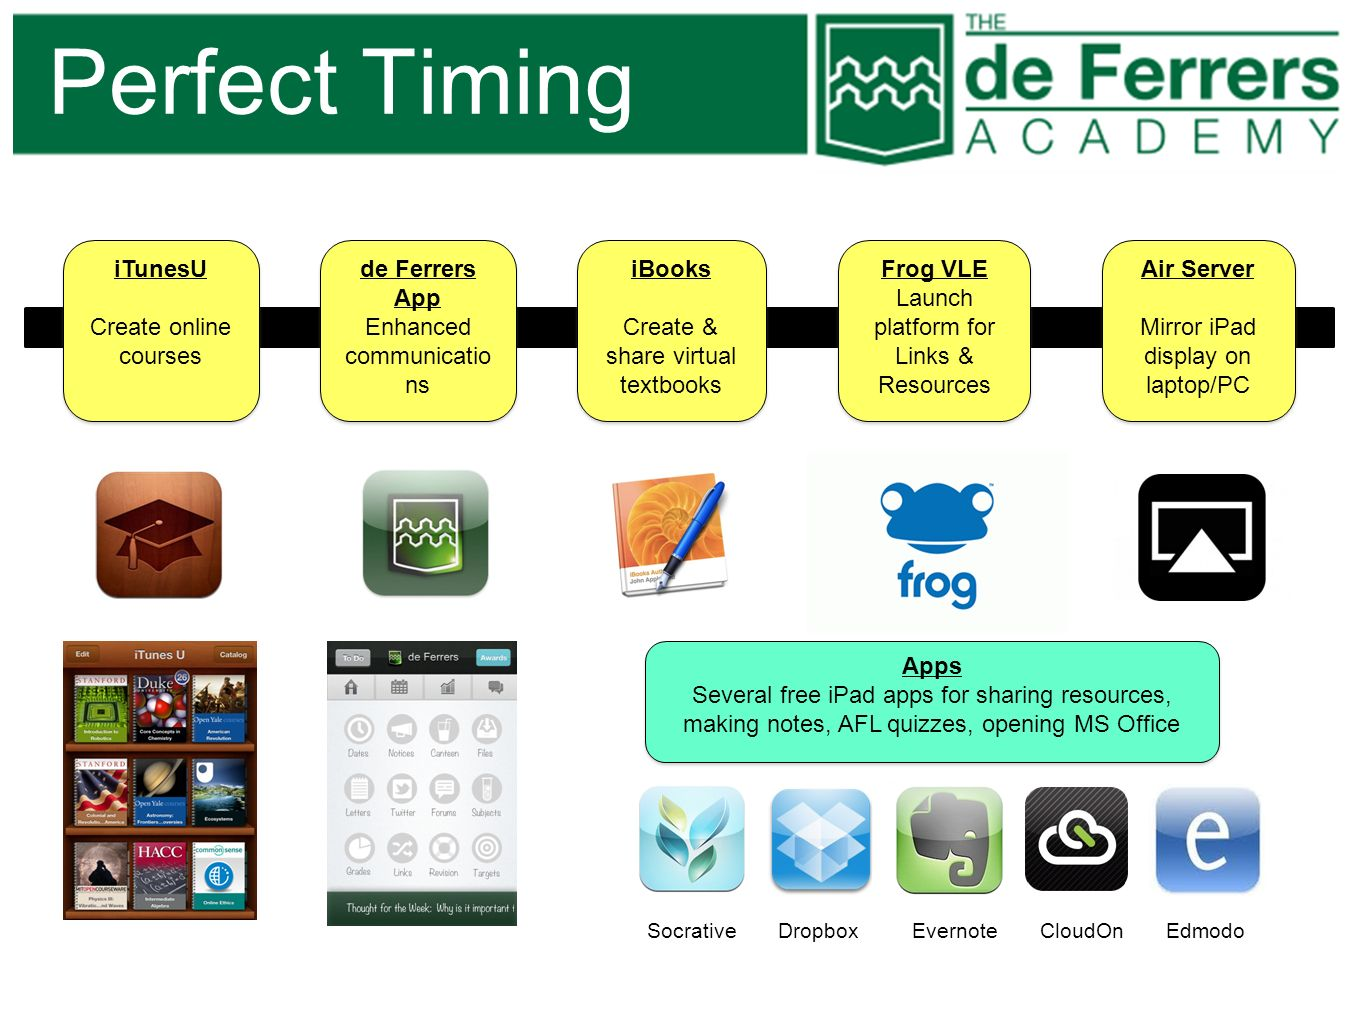 Perfect Timing iTunesU Create online courses iTunesU Create online courses de Ferrers App Enhanced communicatio ns de Ferrers App Enhanced communicati